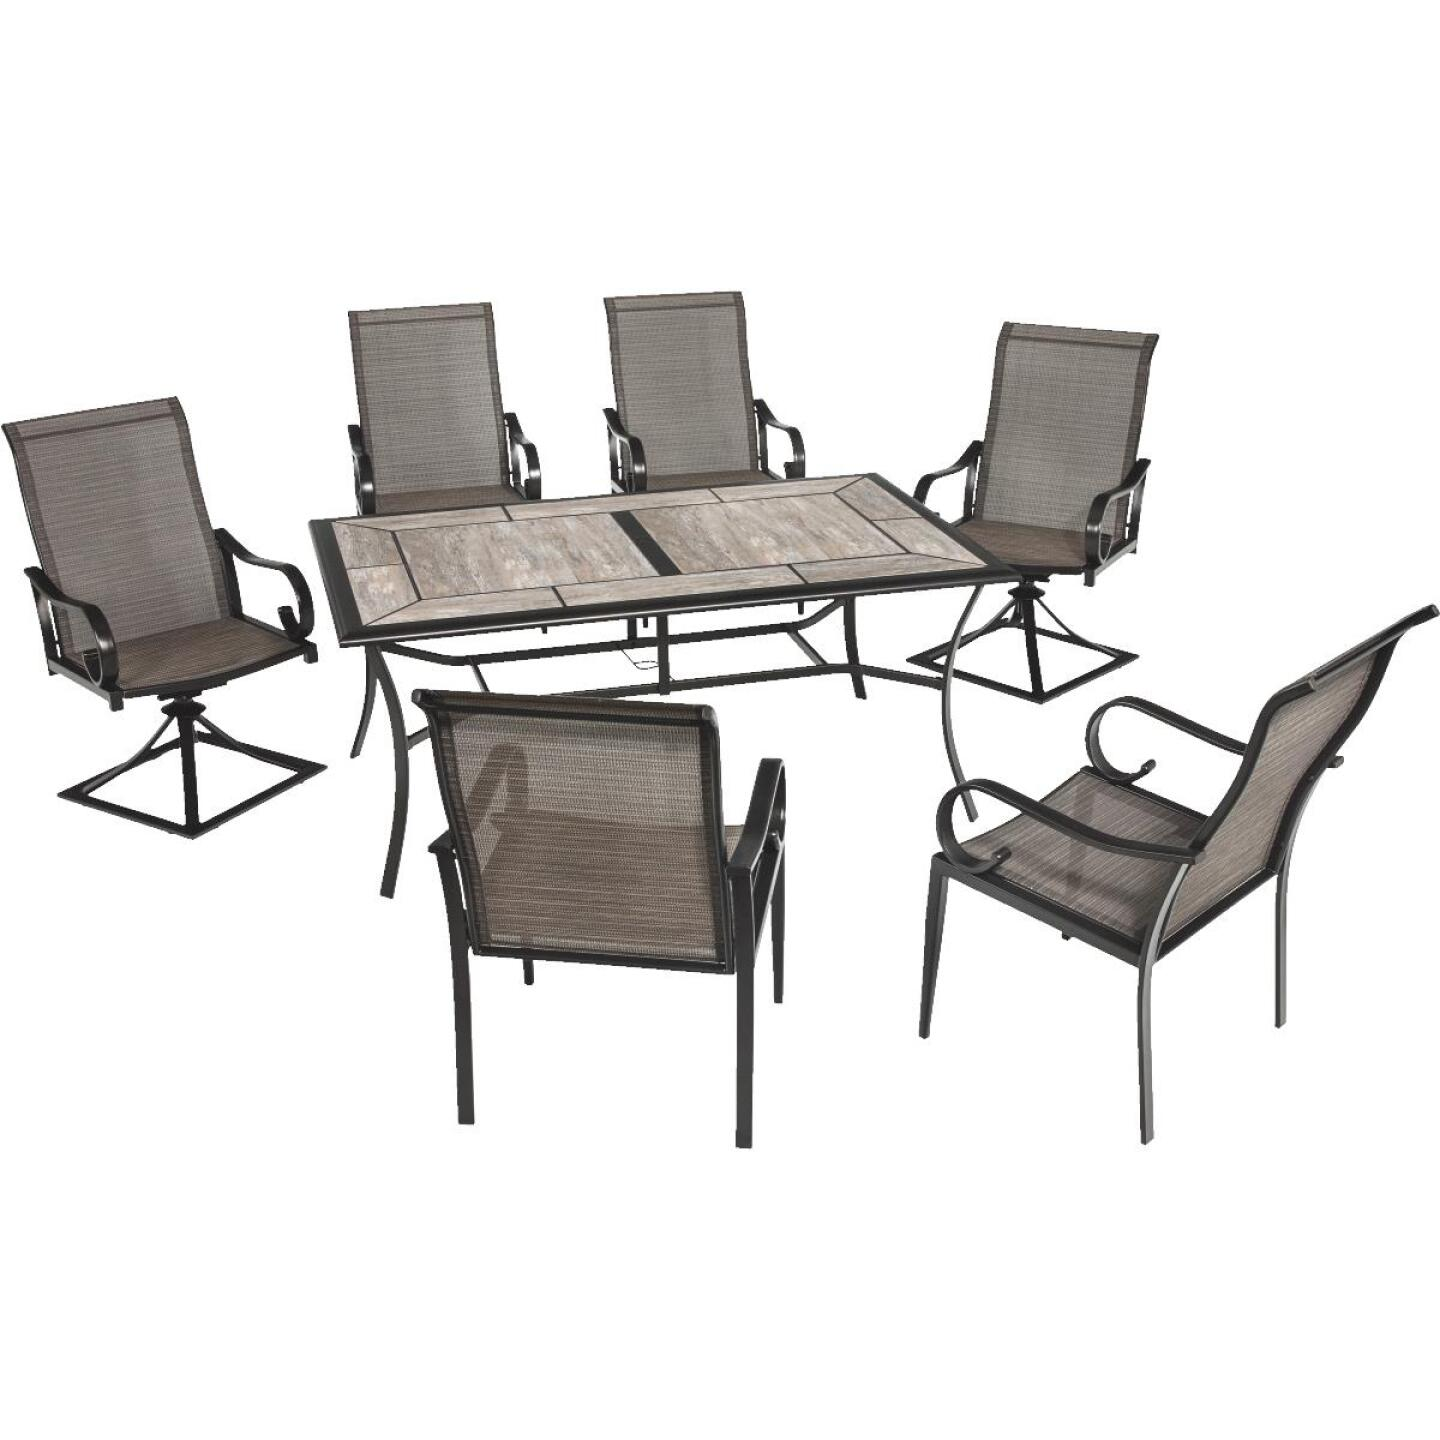 Outdoor Expressions Berkshire 7-Piece Dining Set Image 111